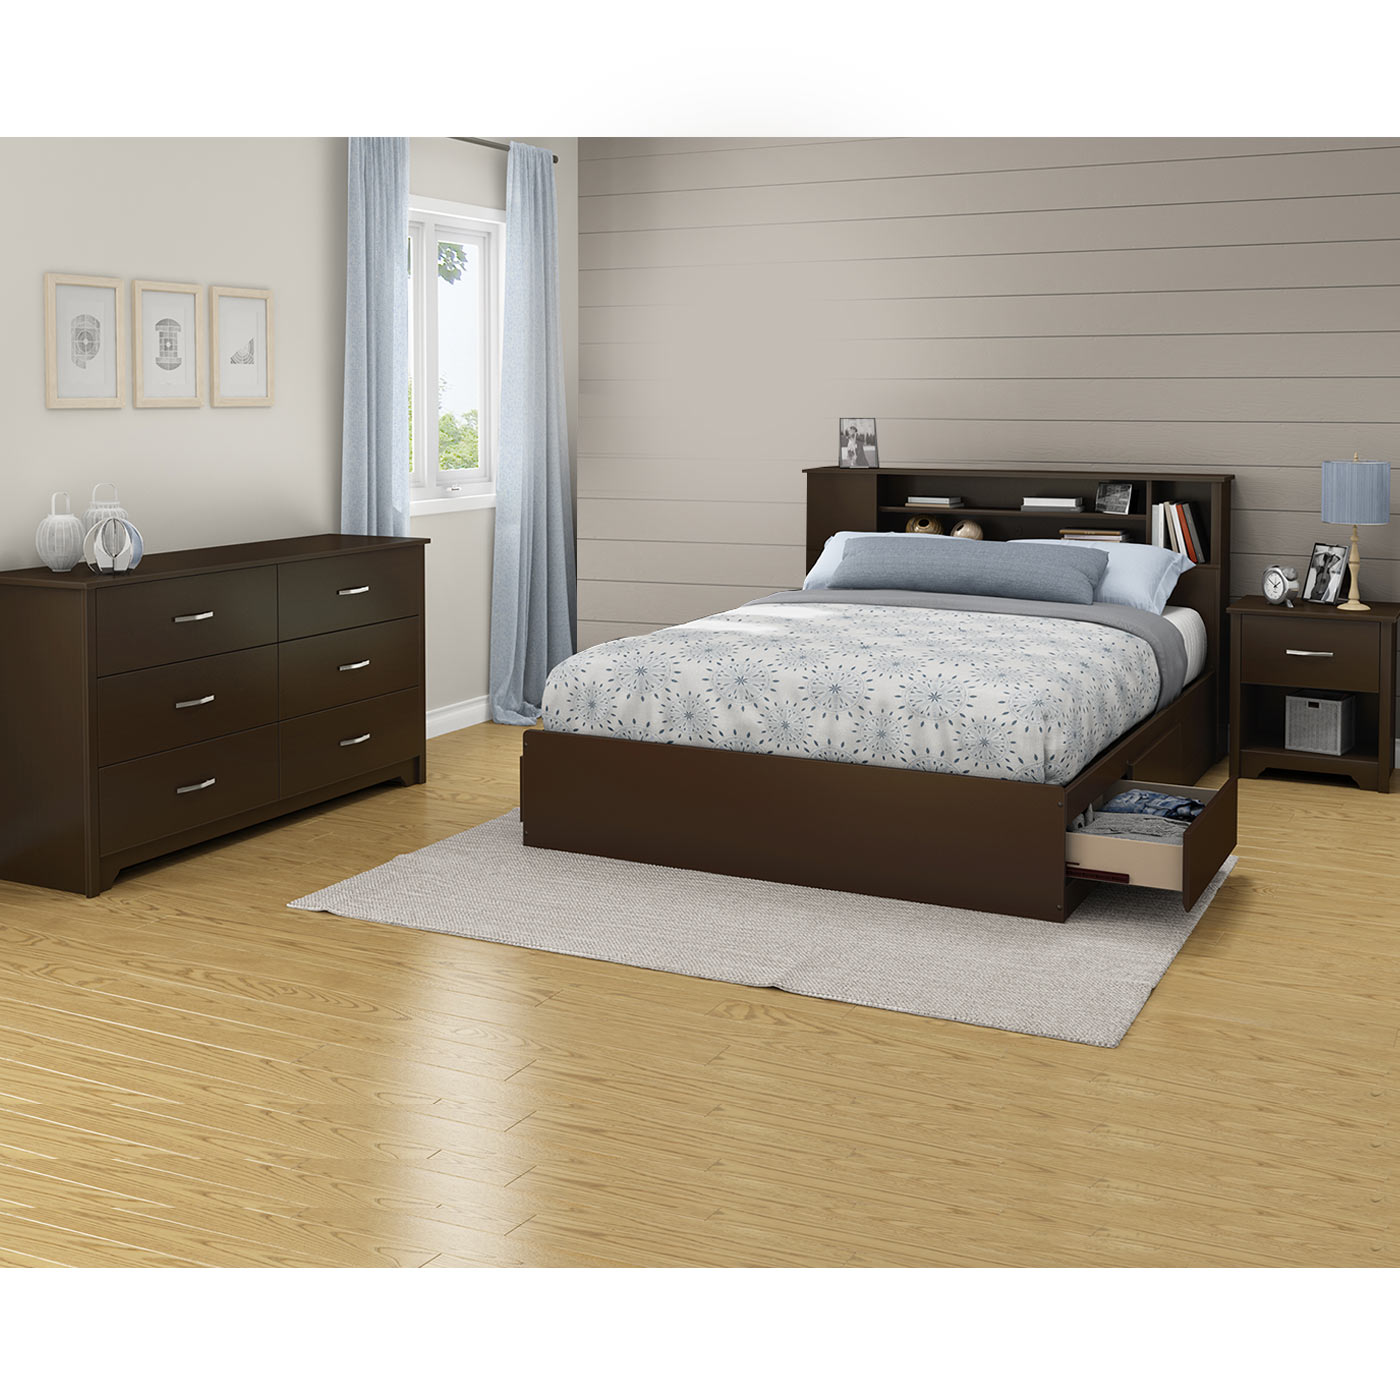 Southshore Fusion 4 Piece Bedroom Set Fusion Queen Mates Bed Bookcase Headboard Double Dresser And Nightstand In Chocolate